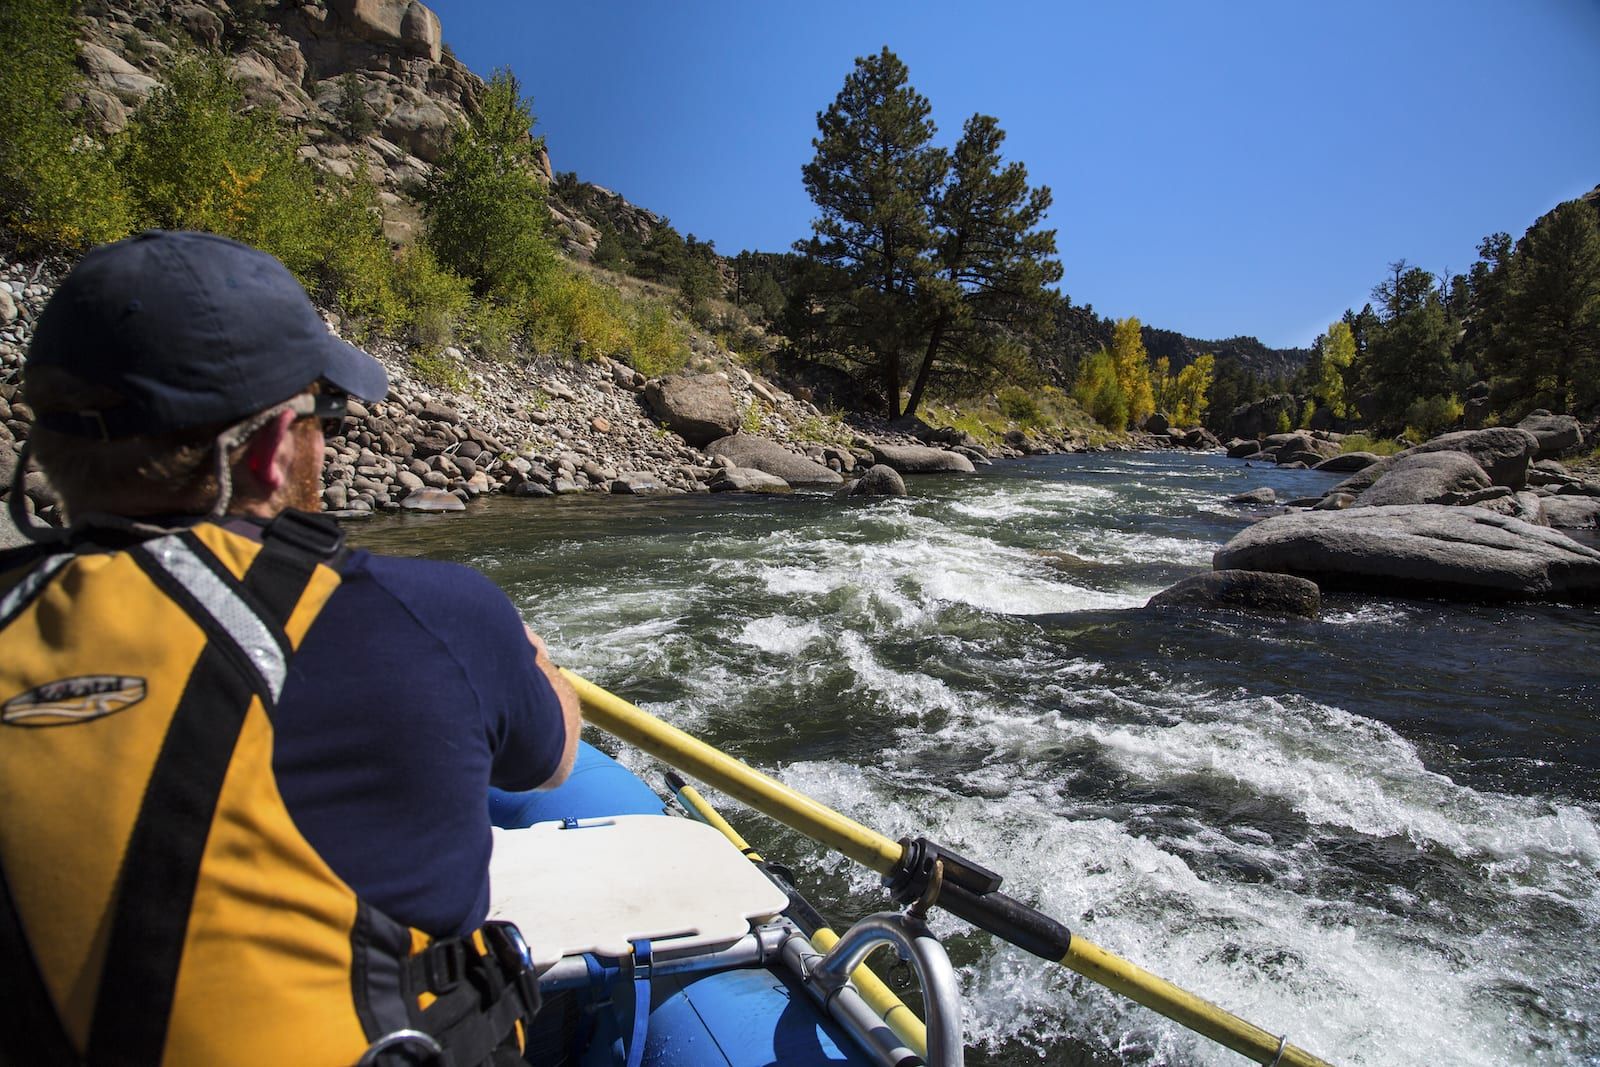 Arkansas River Whitewater Rafting Guide Browns Canyon National Monument